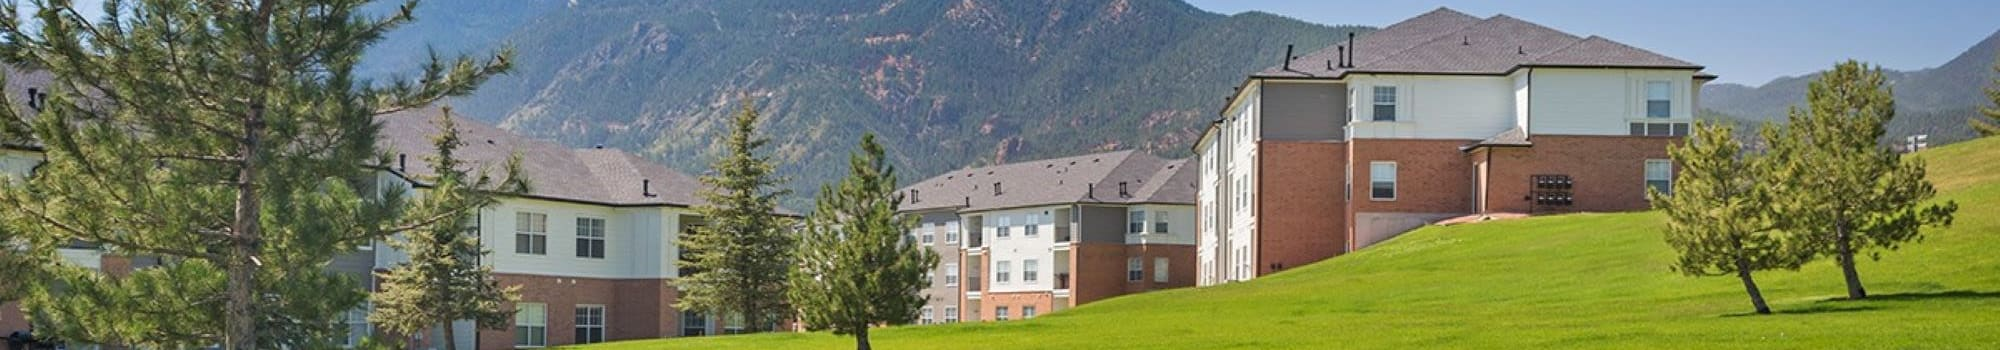 Request maintenance at Retreat at Cheyenne Mountain Apartments in Colorado Springs, CO